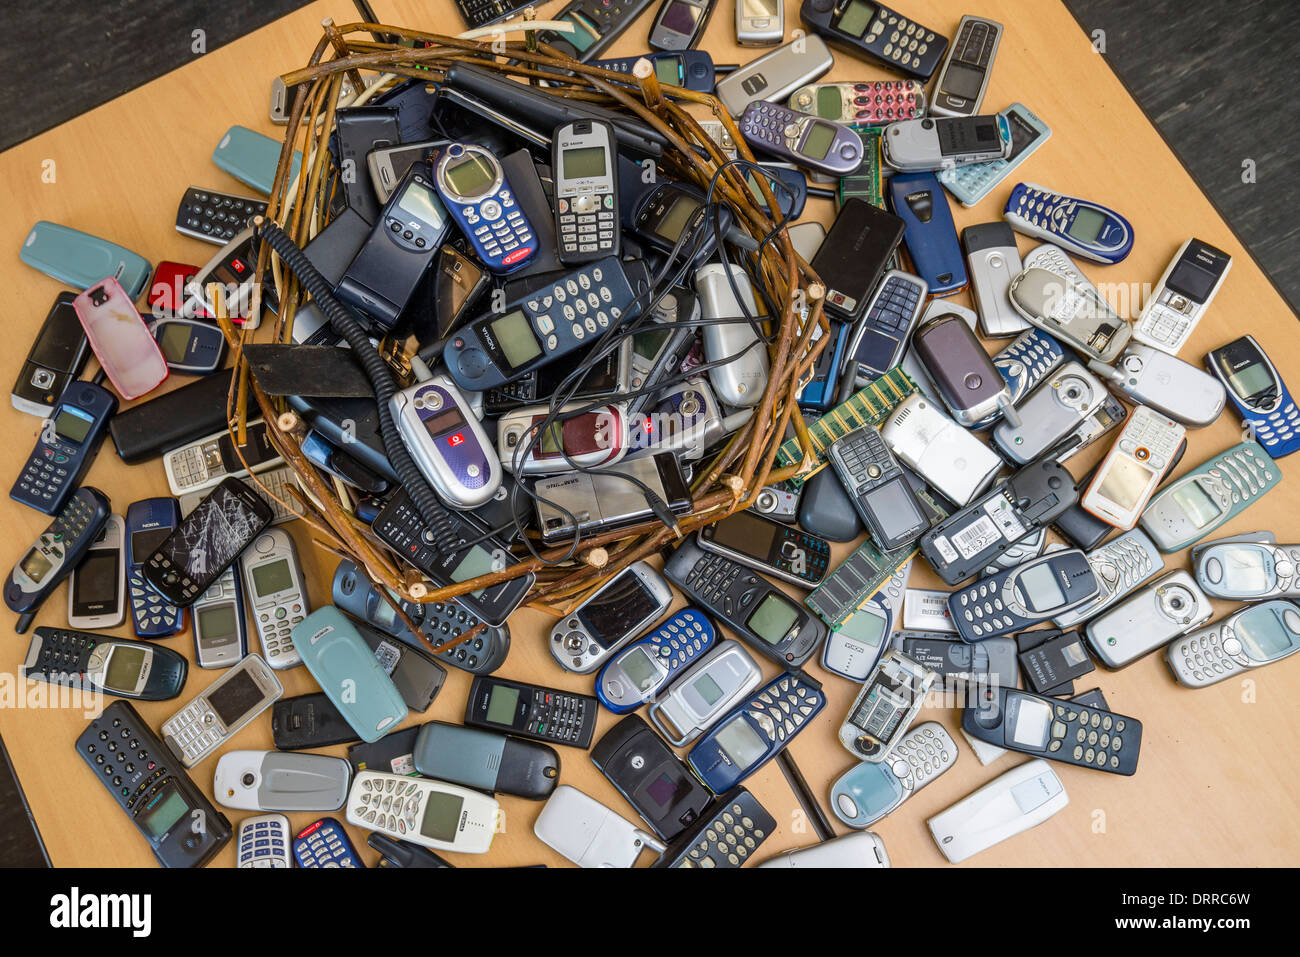 Discarded cellphones lie on a table. - Stock Image